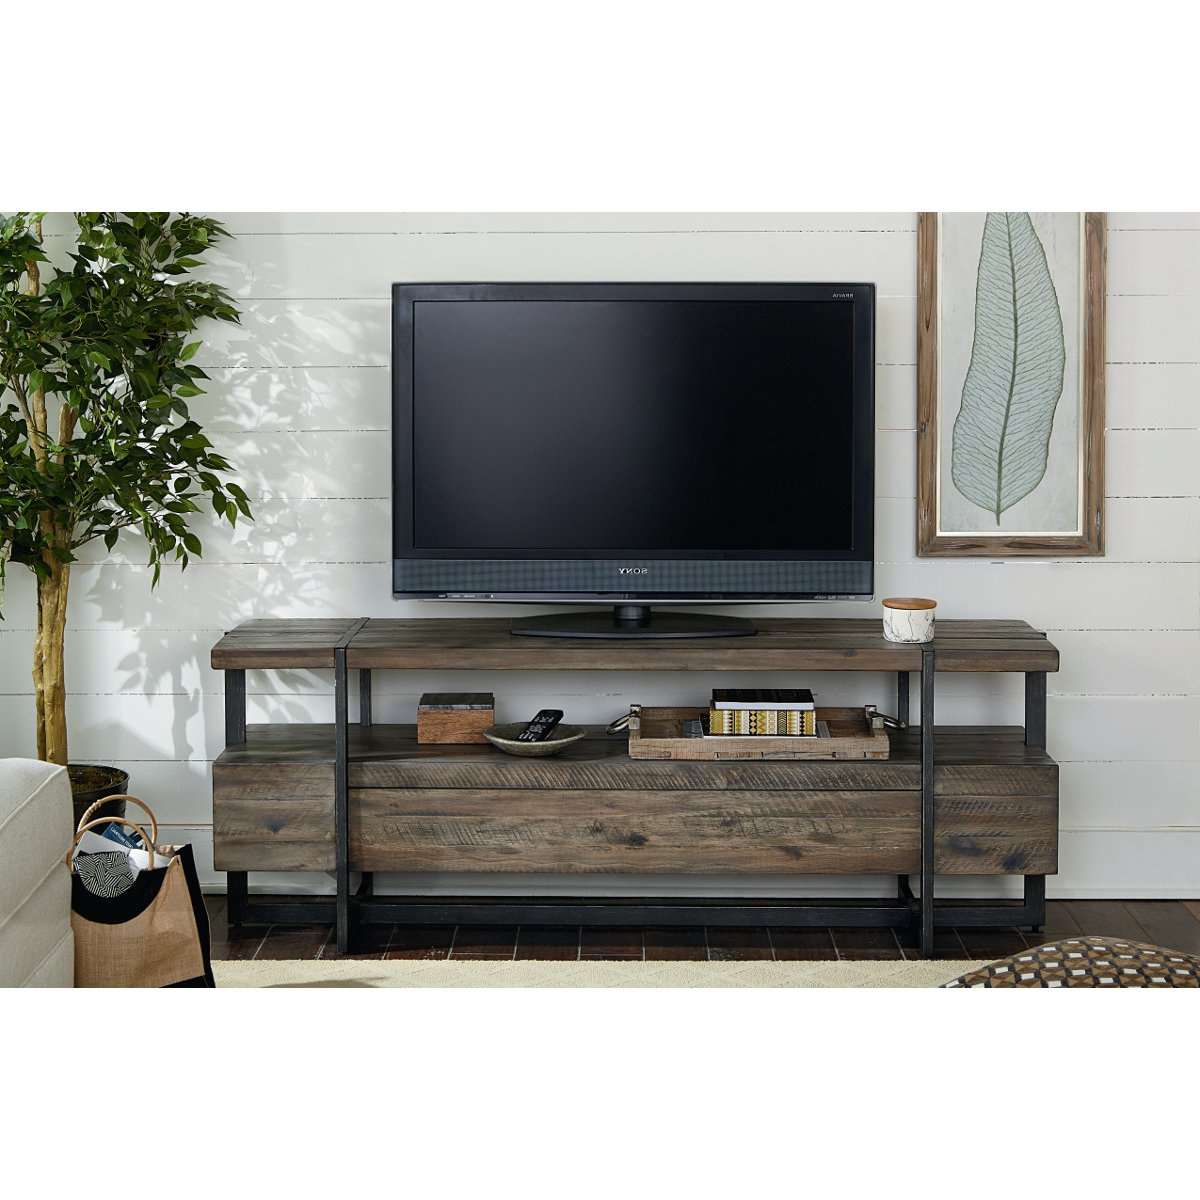 Fashionable 66 Inch Rustic Brown Tv Stand – Modern Timber (View 5 of 20)